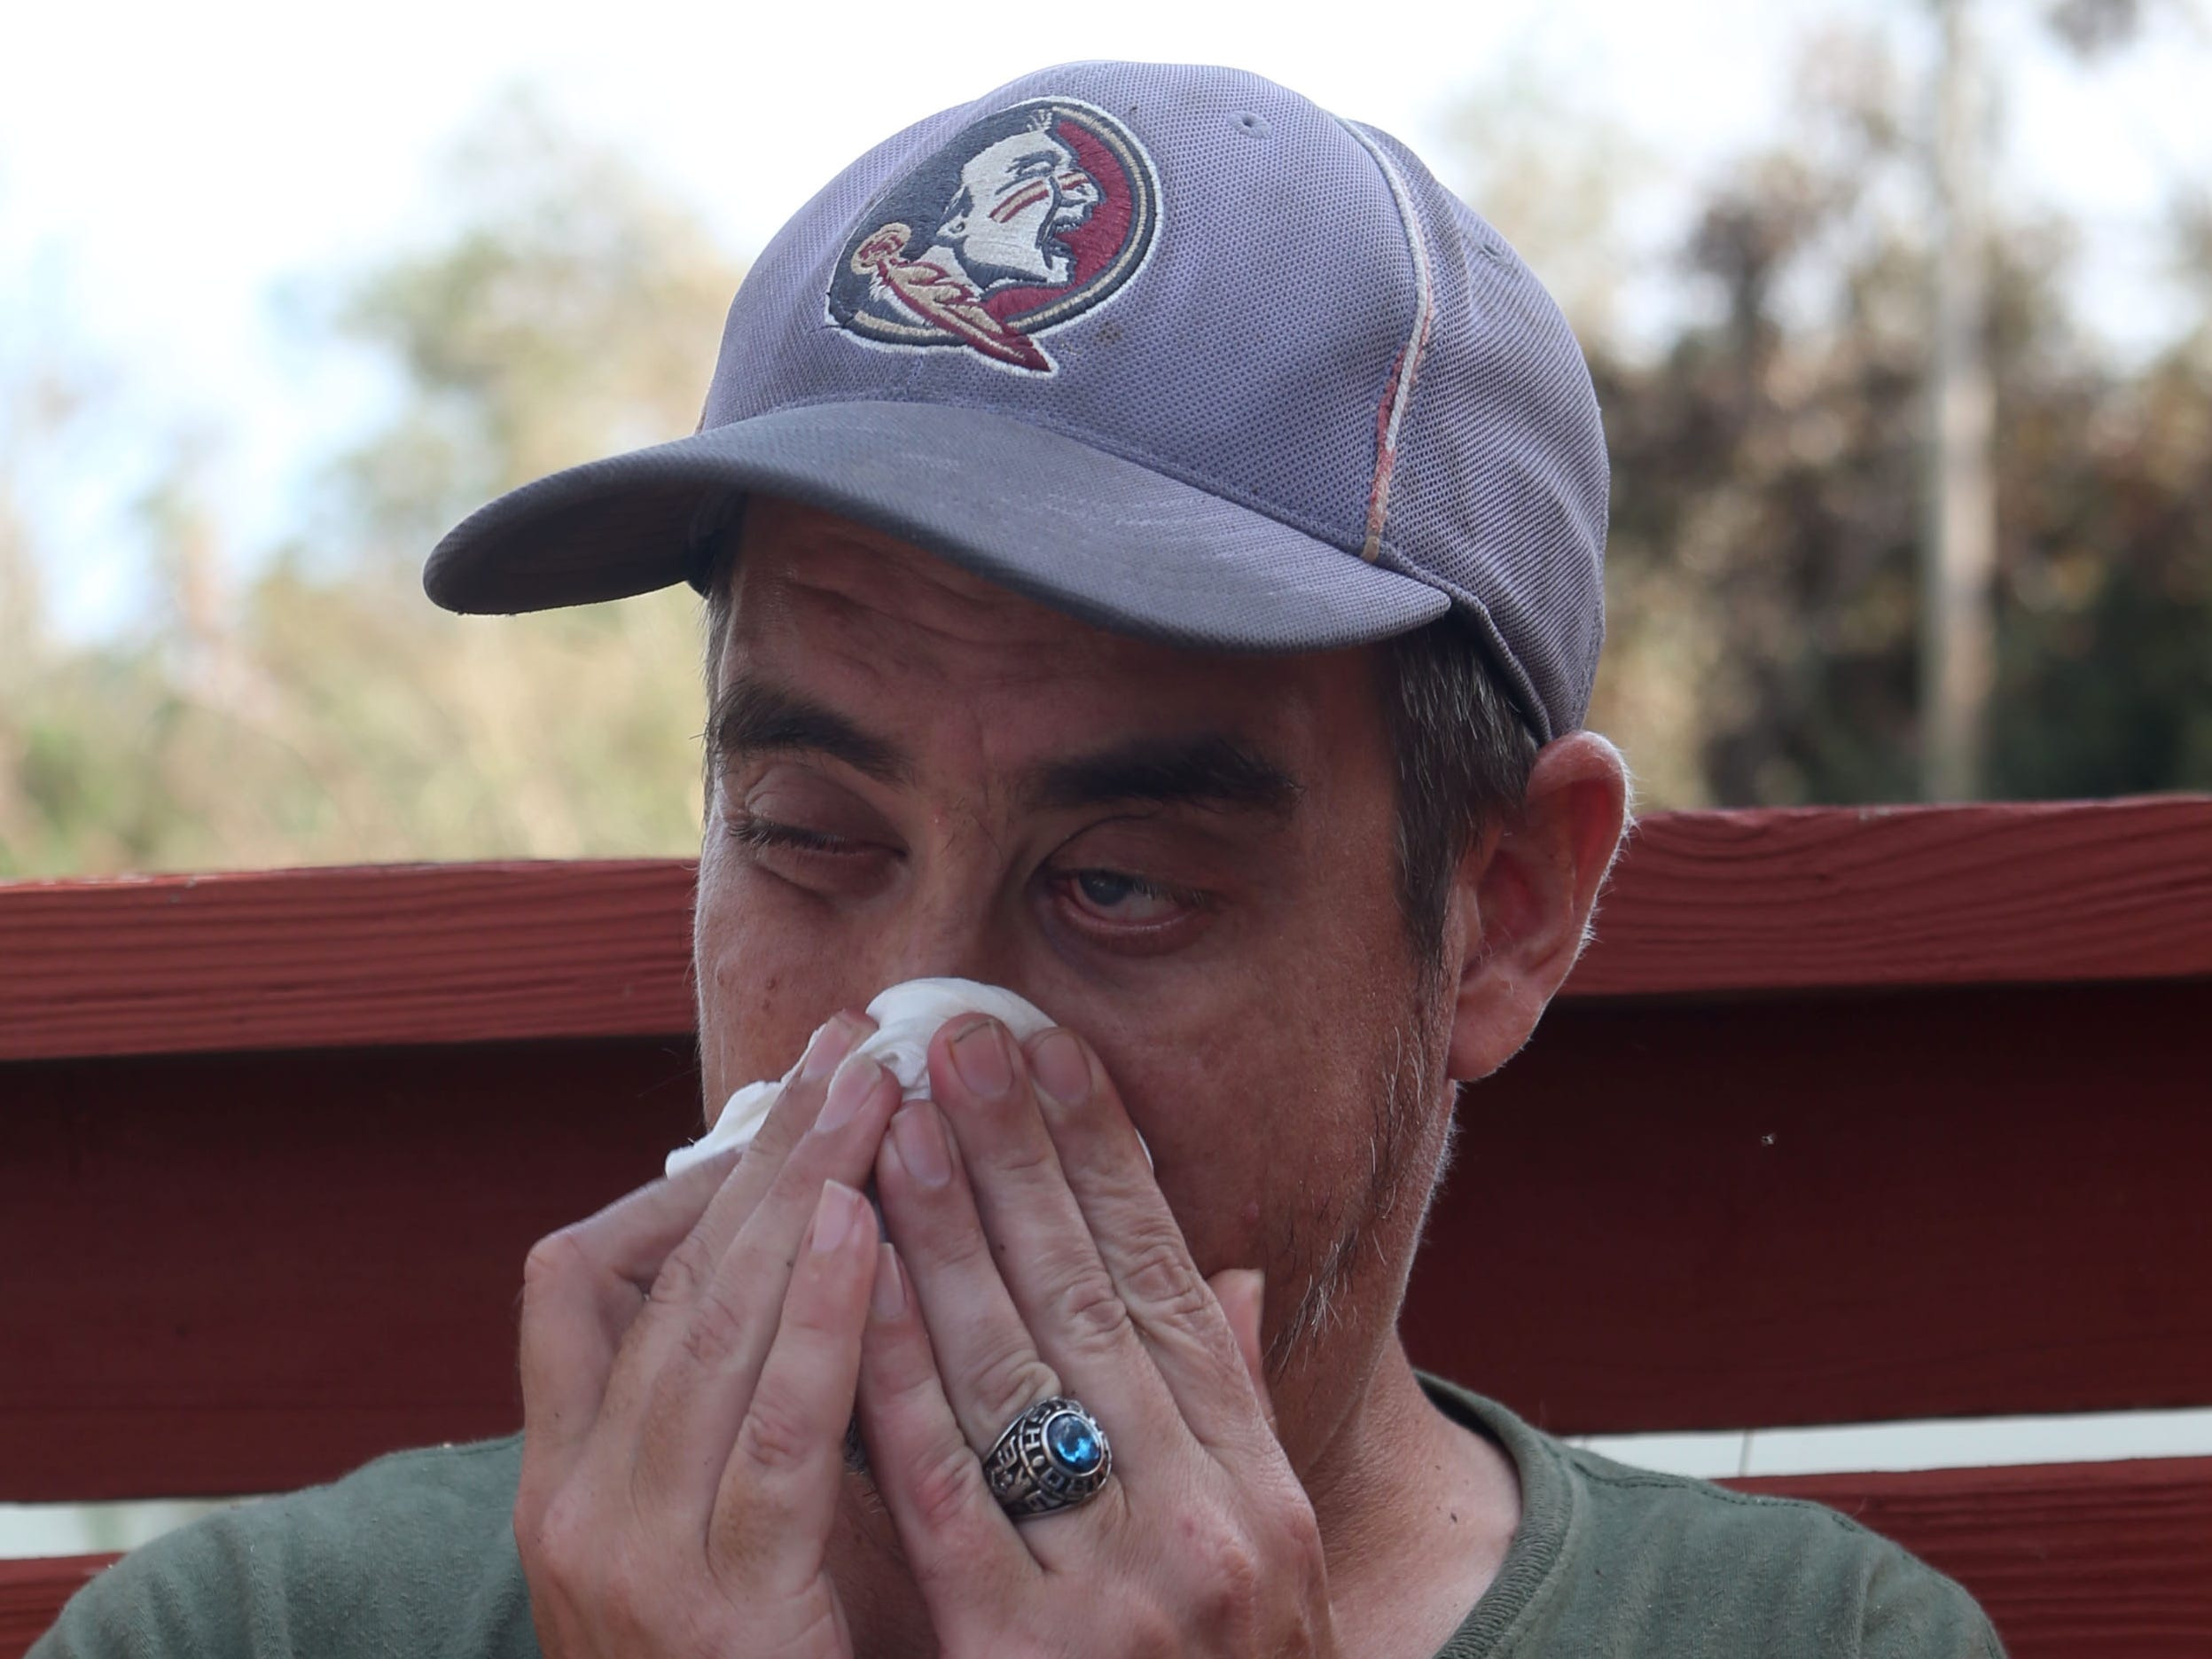 Ronnie Radney, uncle of Sarah Radney, an 11 year old girl who died during Hurricane Michael in Donalsonville, Ga., wipes away tears as his parents describe what happened during the storm on Thursday, Oct. 18, 2018.